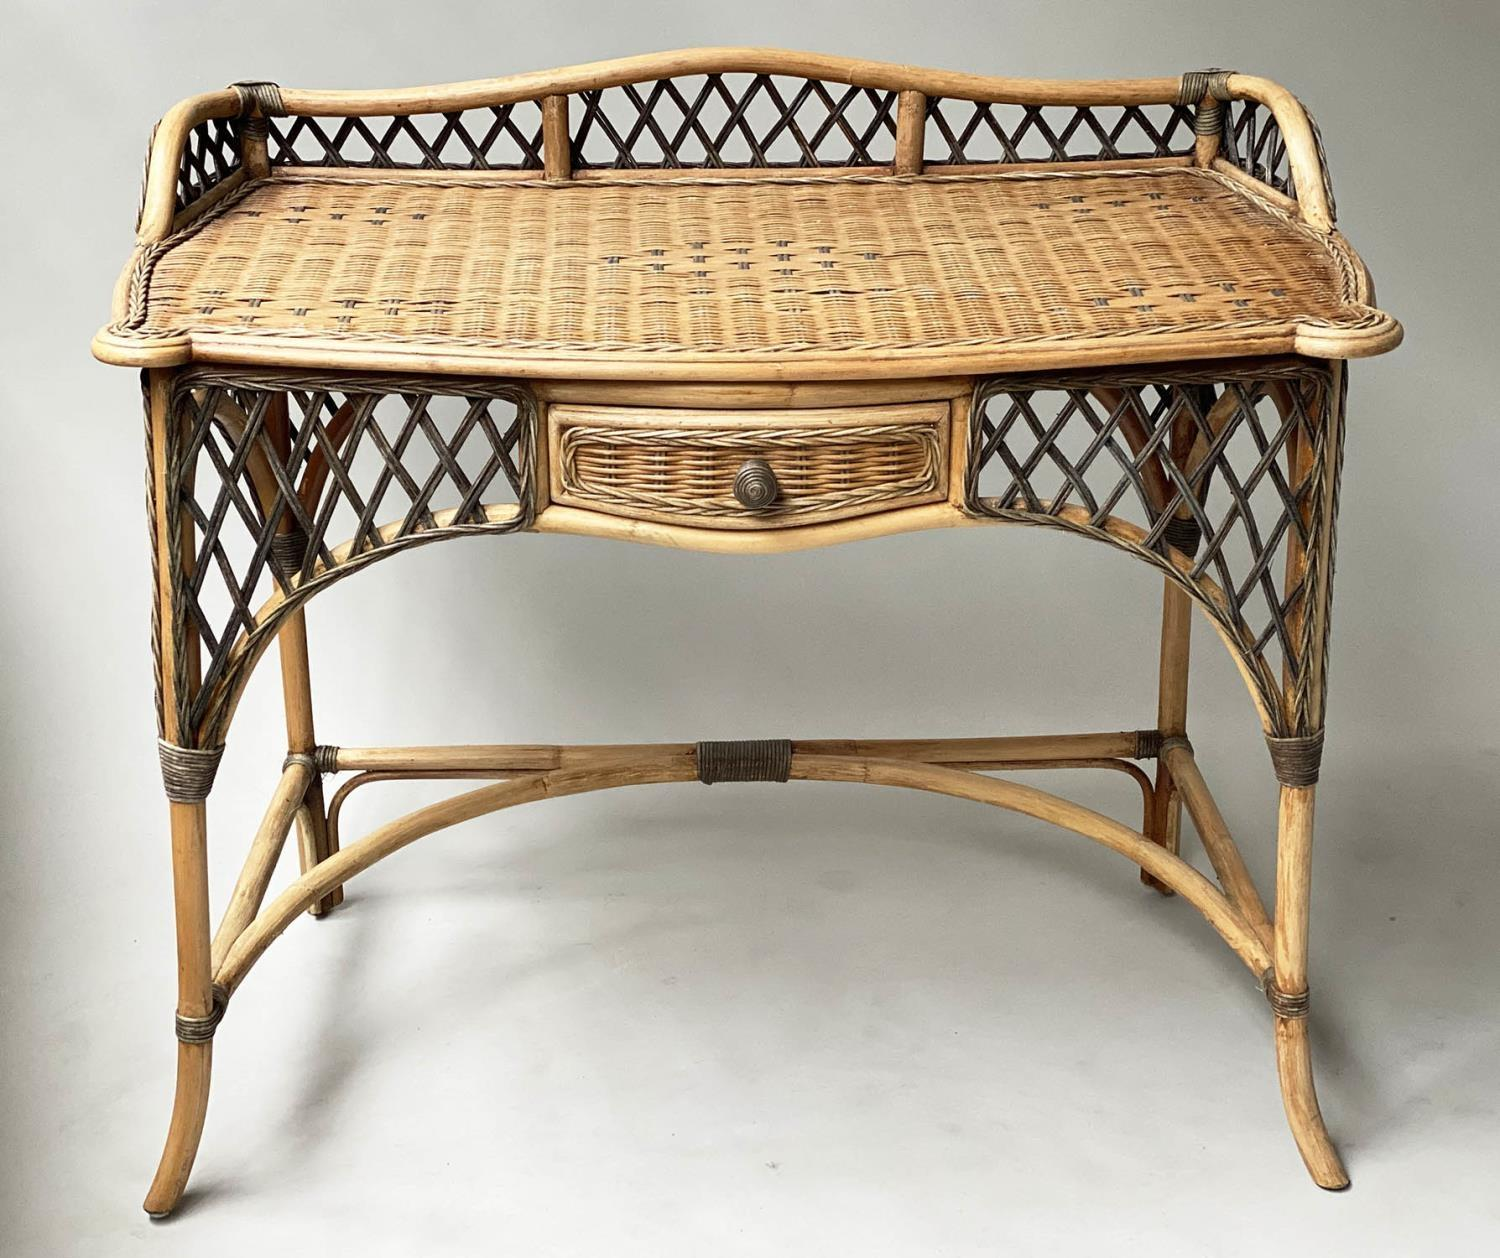 SIDE/WRITING TABLE, vintage Ralph Lauren style two tone rattan with gallery and frieze drawer, 103cm